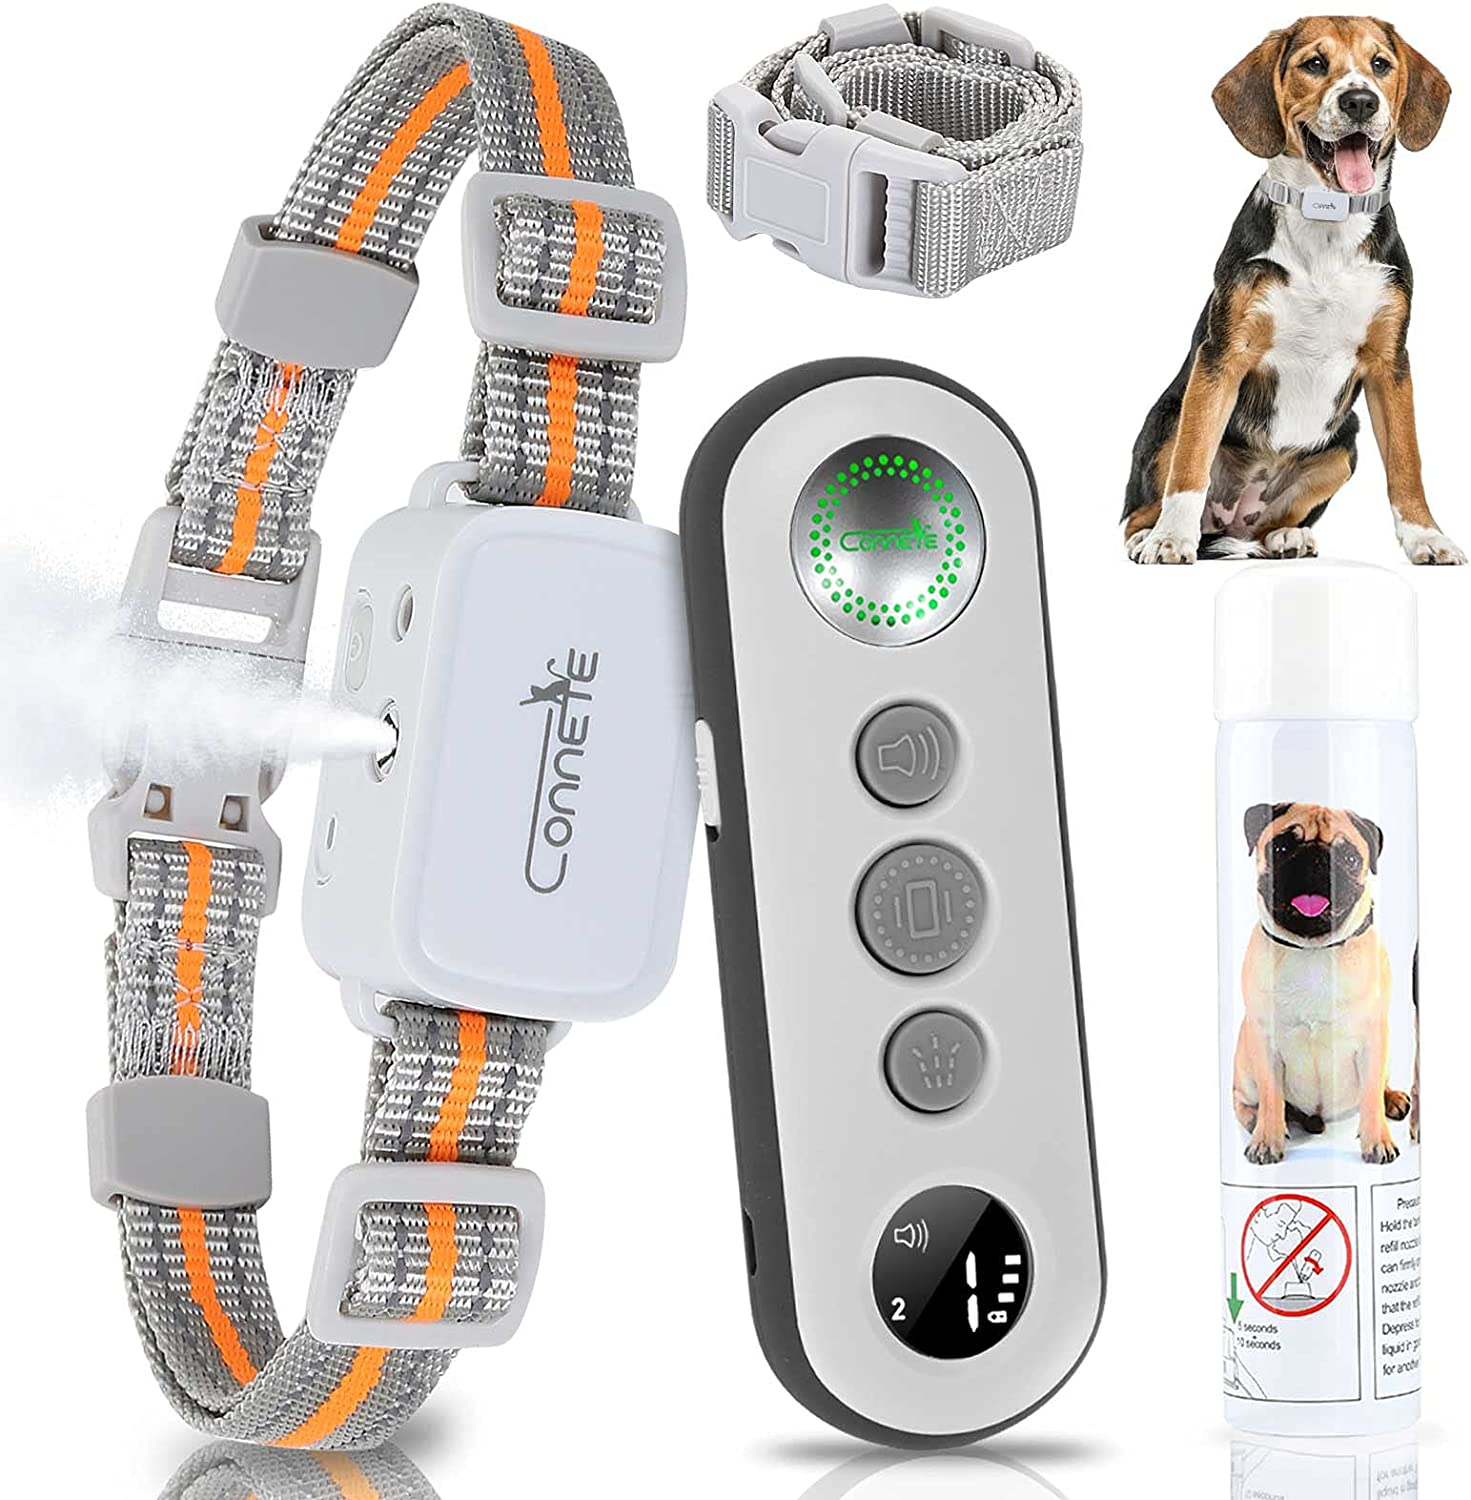 specialty shop Special Campaign connete Dog Collar for Large wi Citronella Bark Dogs